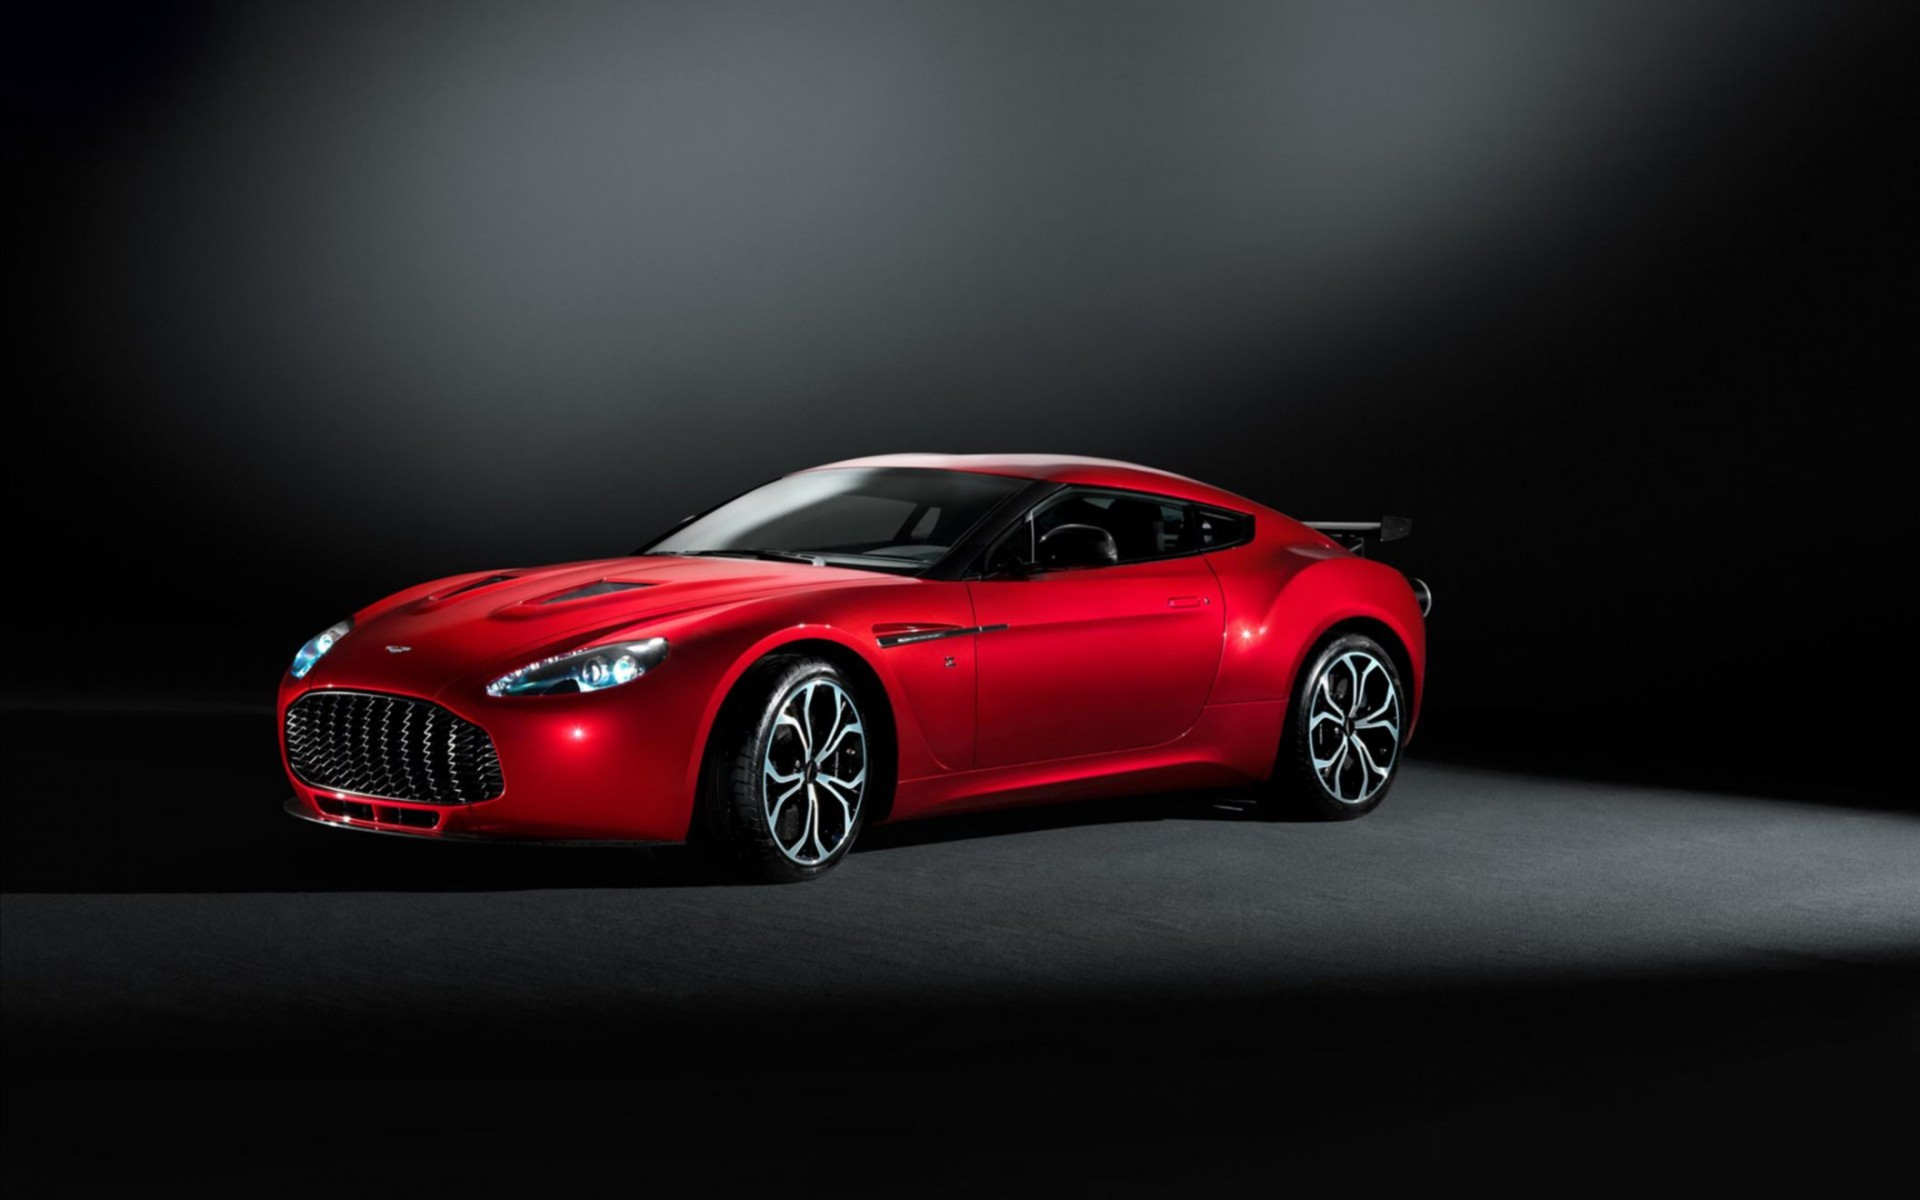 2013 Aston Martin V12 Zagato Wide Wallpaper